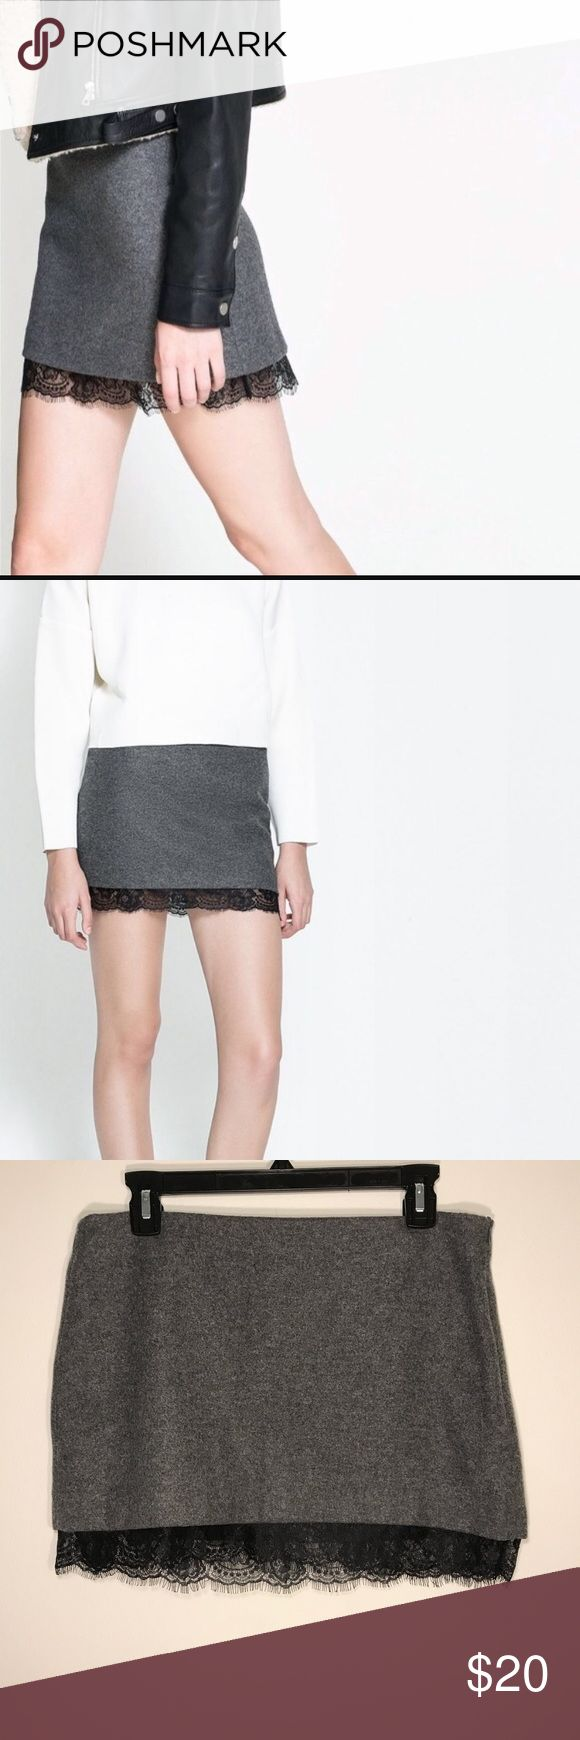 ✨CLEARANCE✨ ZARA Wool skirt with lace hem Beautiful Zara gray wool skirt with gorgeous black lace hem detail. Side zipper. Dress it up or down. Easily takes any outfit from day to night. Zara Skirts Mini